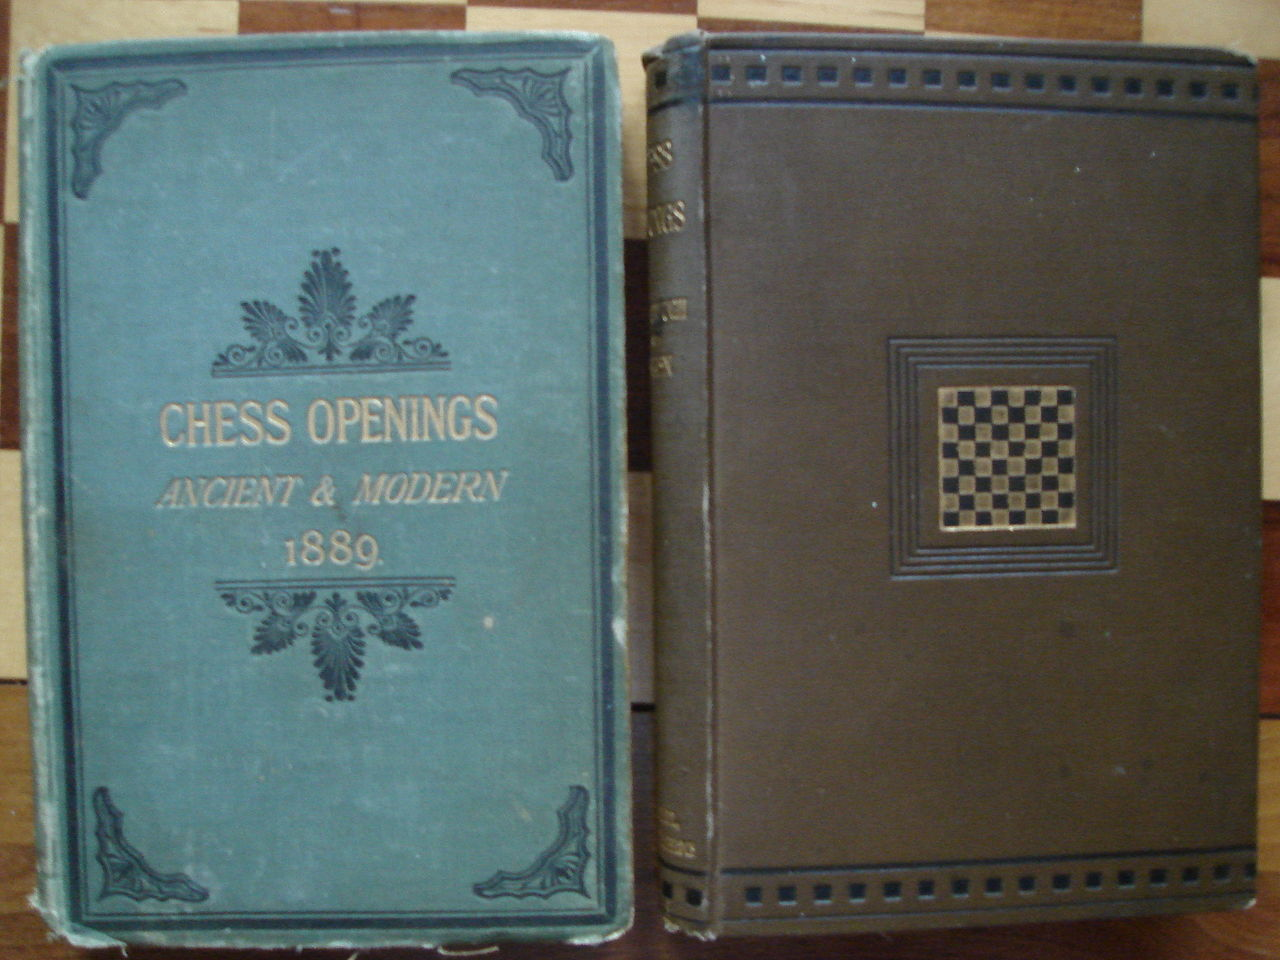 Chess Openings Ancient and Modern 1889